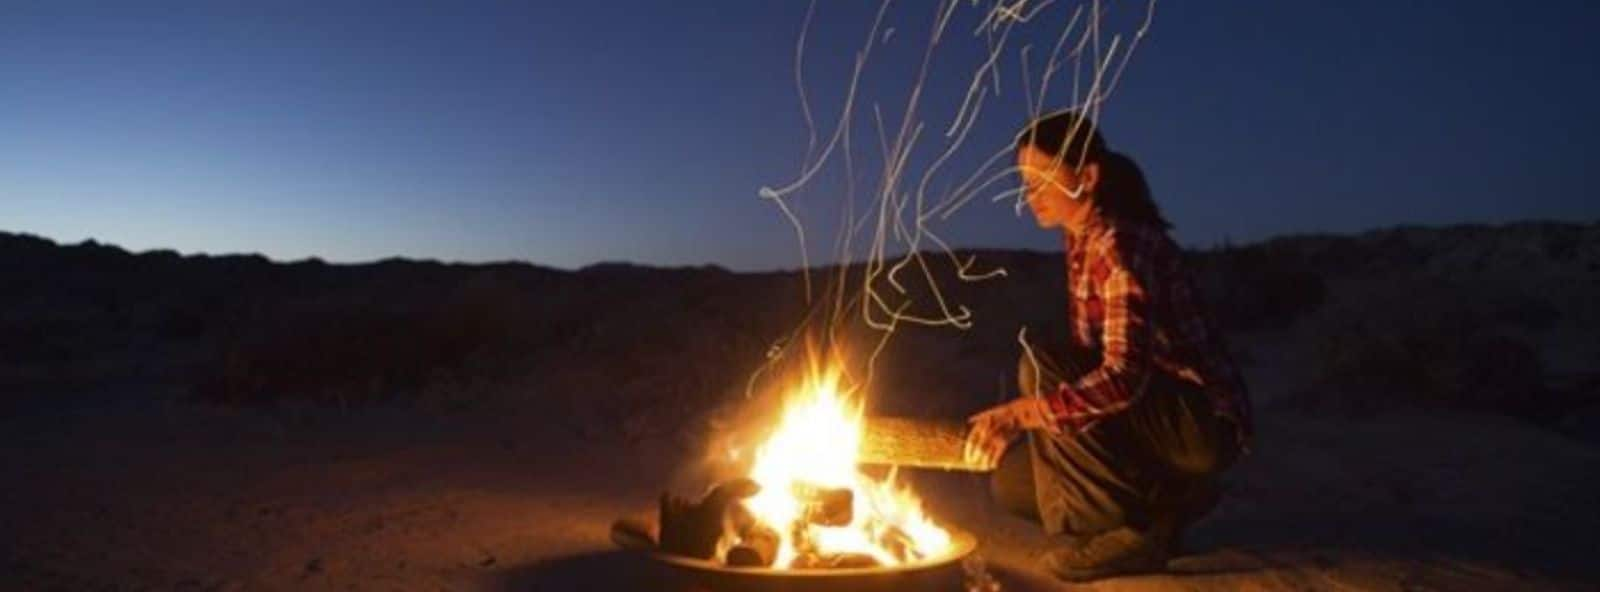 Woman putting a log on campfire at sunset - vast early night dark blue skies in background